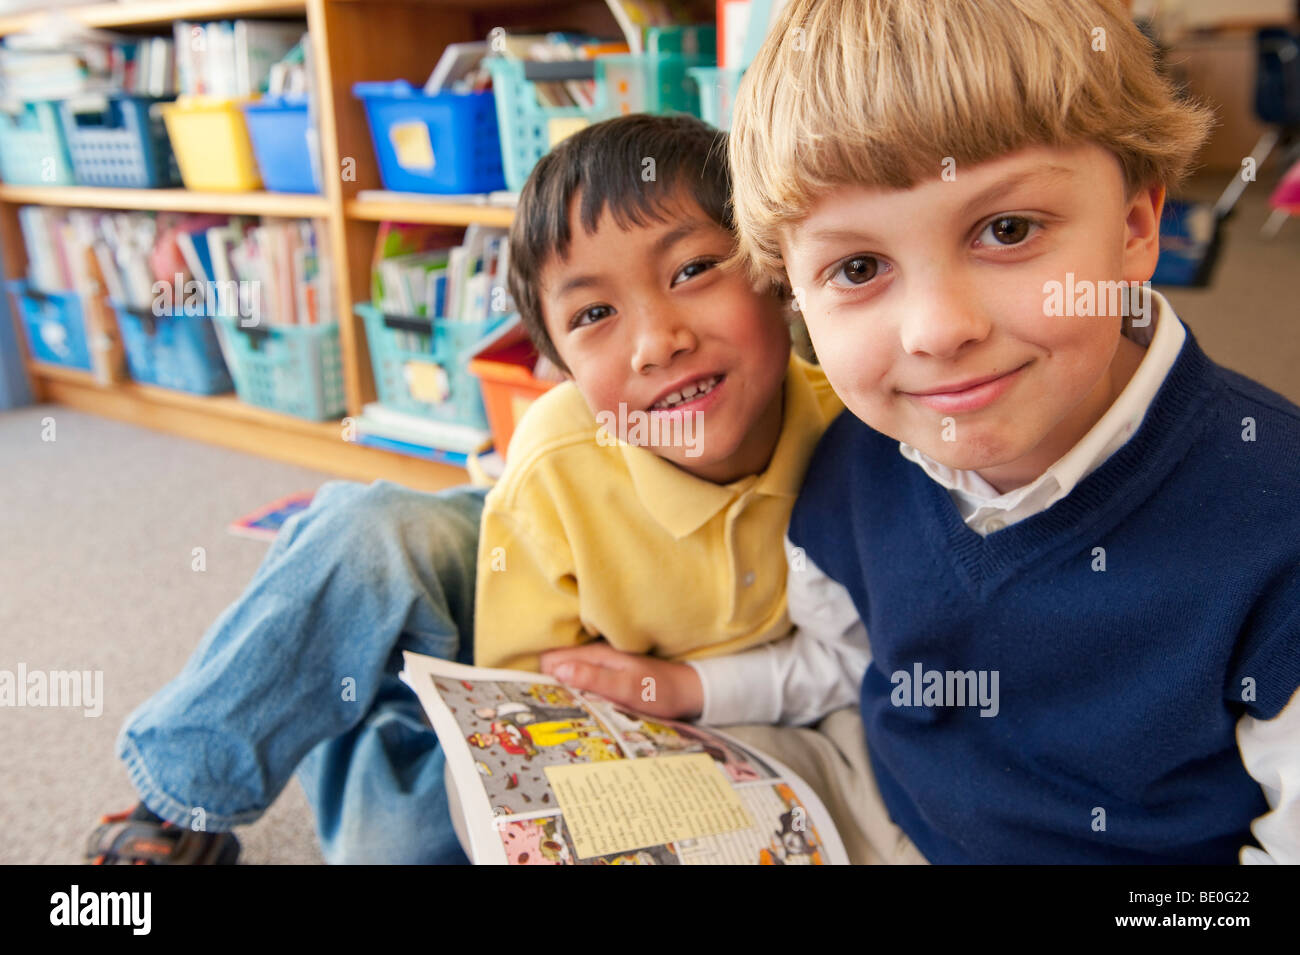 Students reading book together Photo Stock